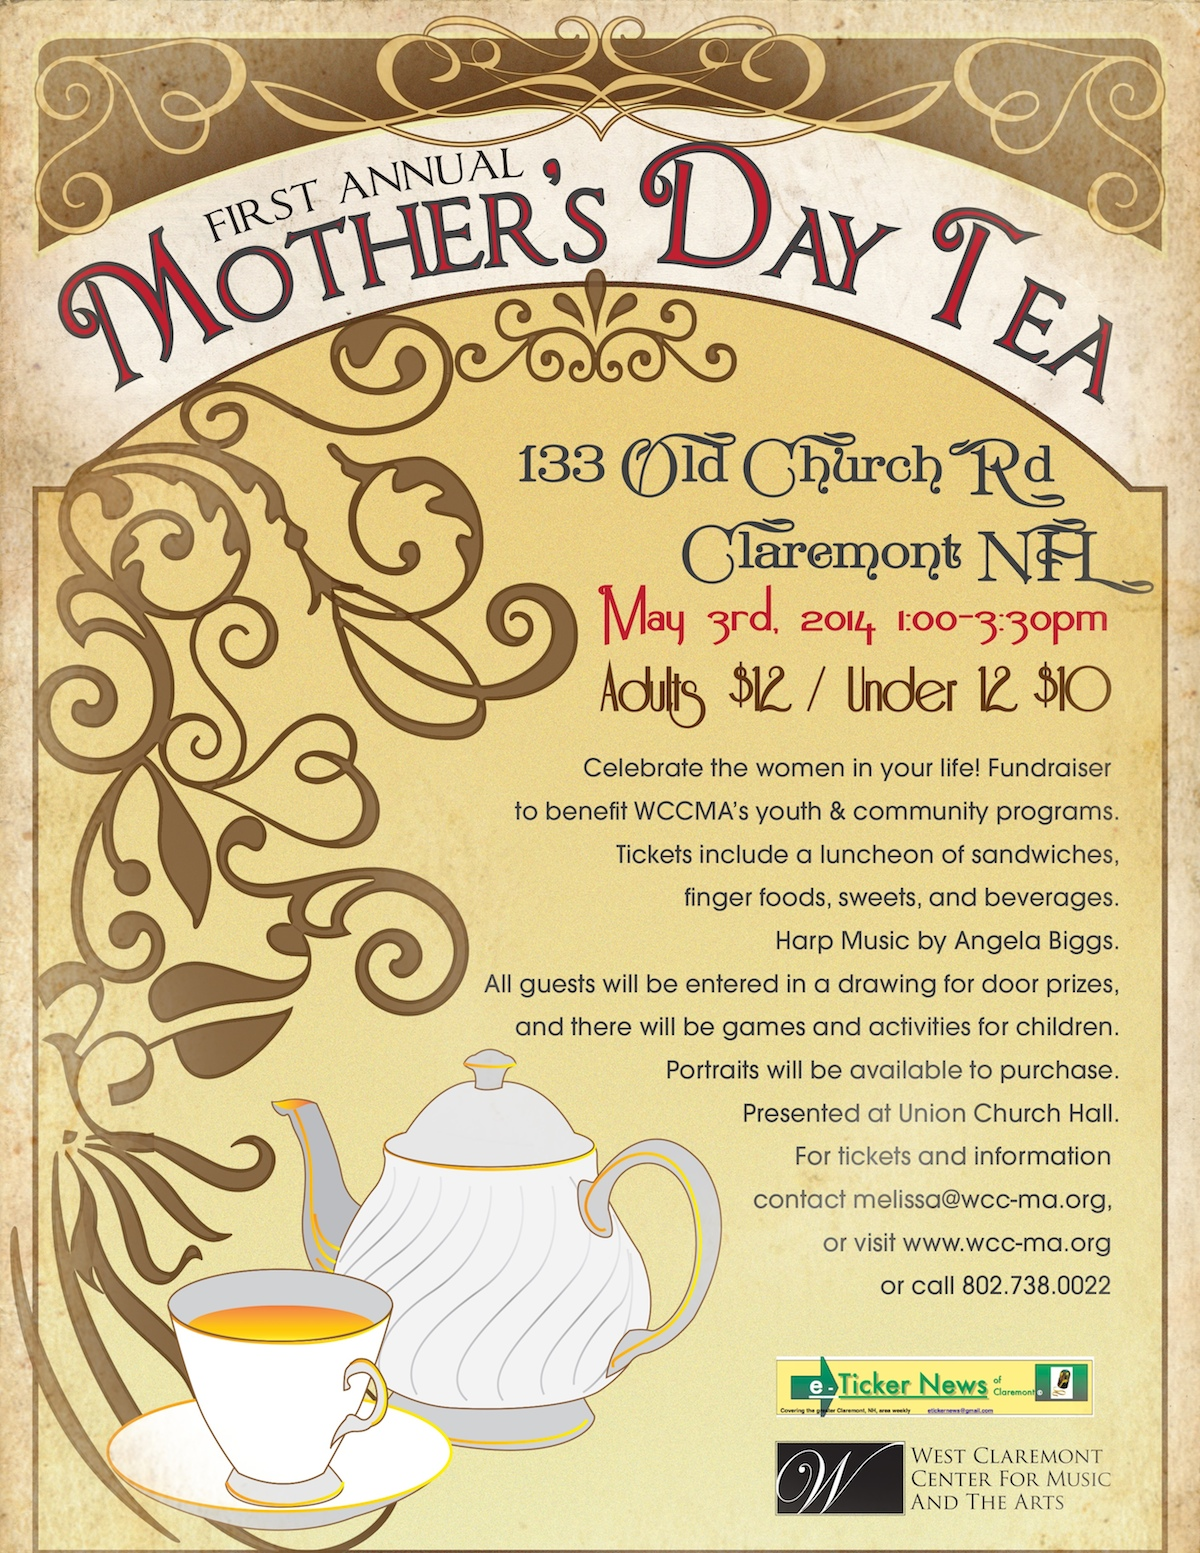 First Annual Mother S Day Tea West Claremont Center For Music And